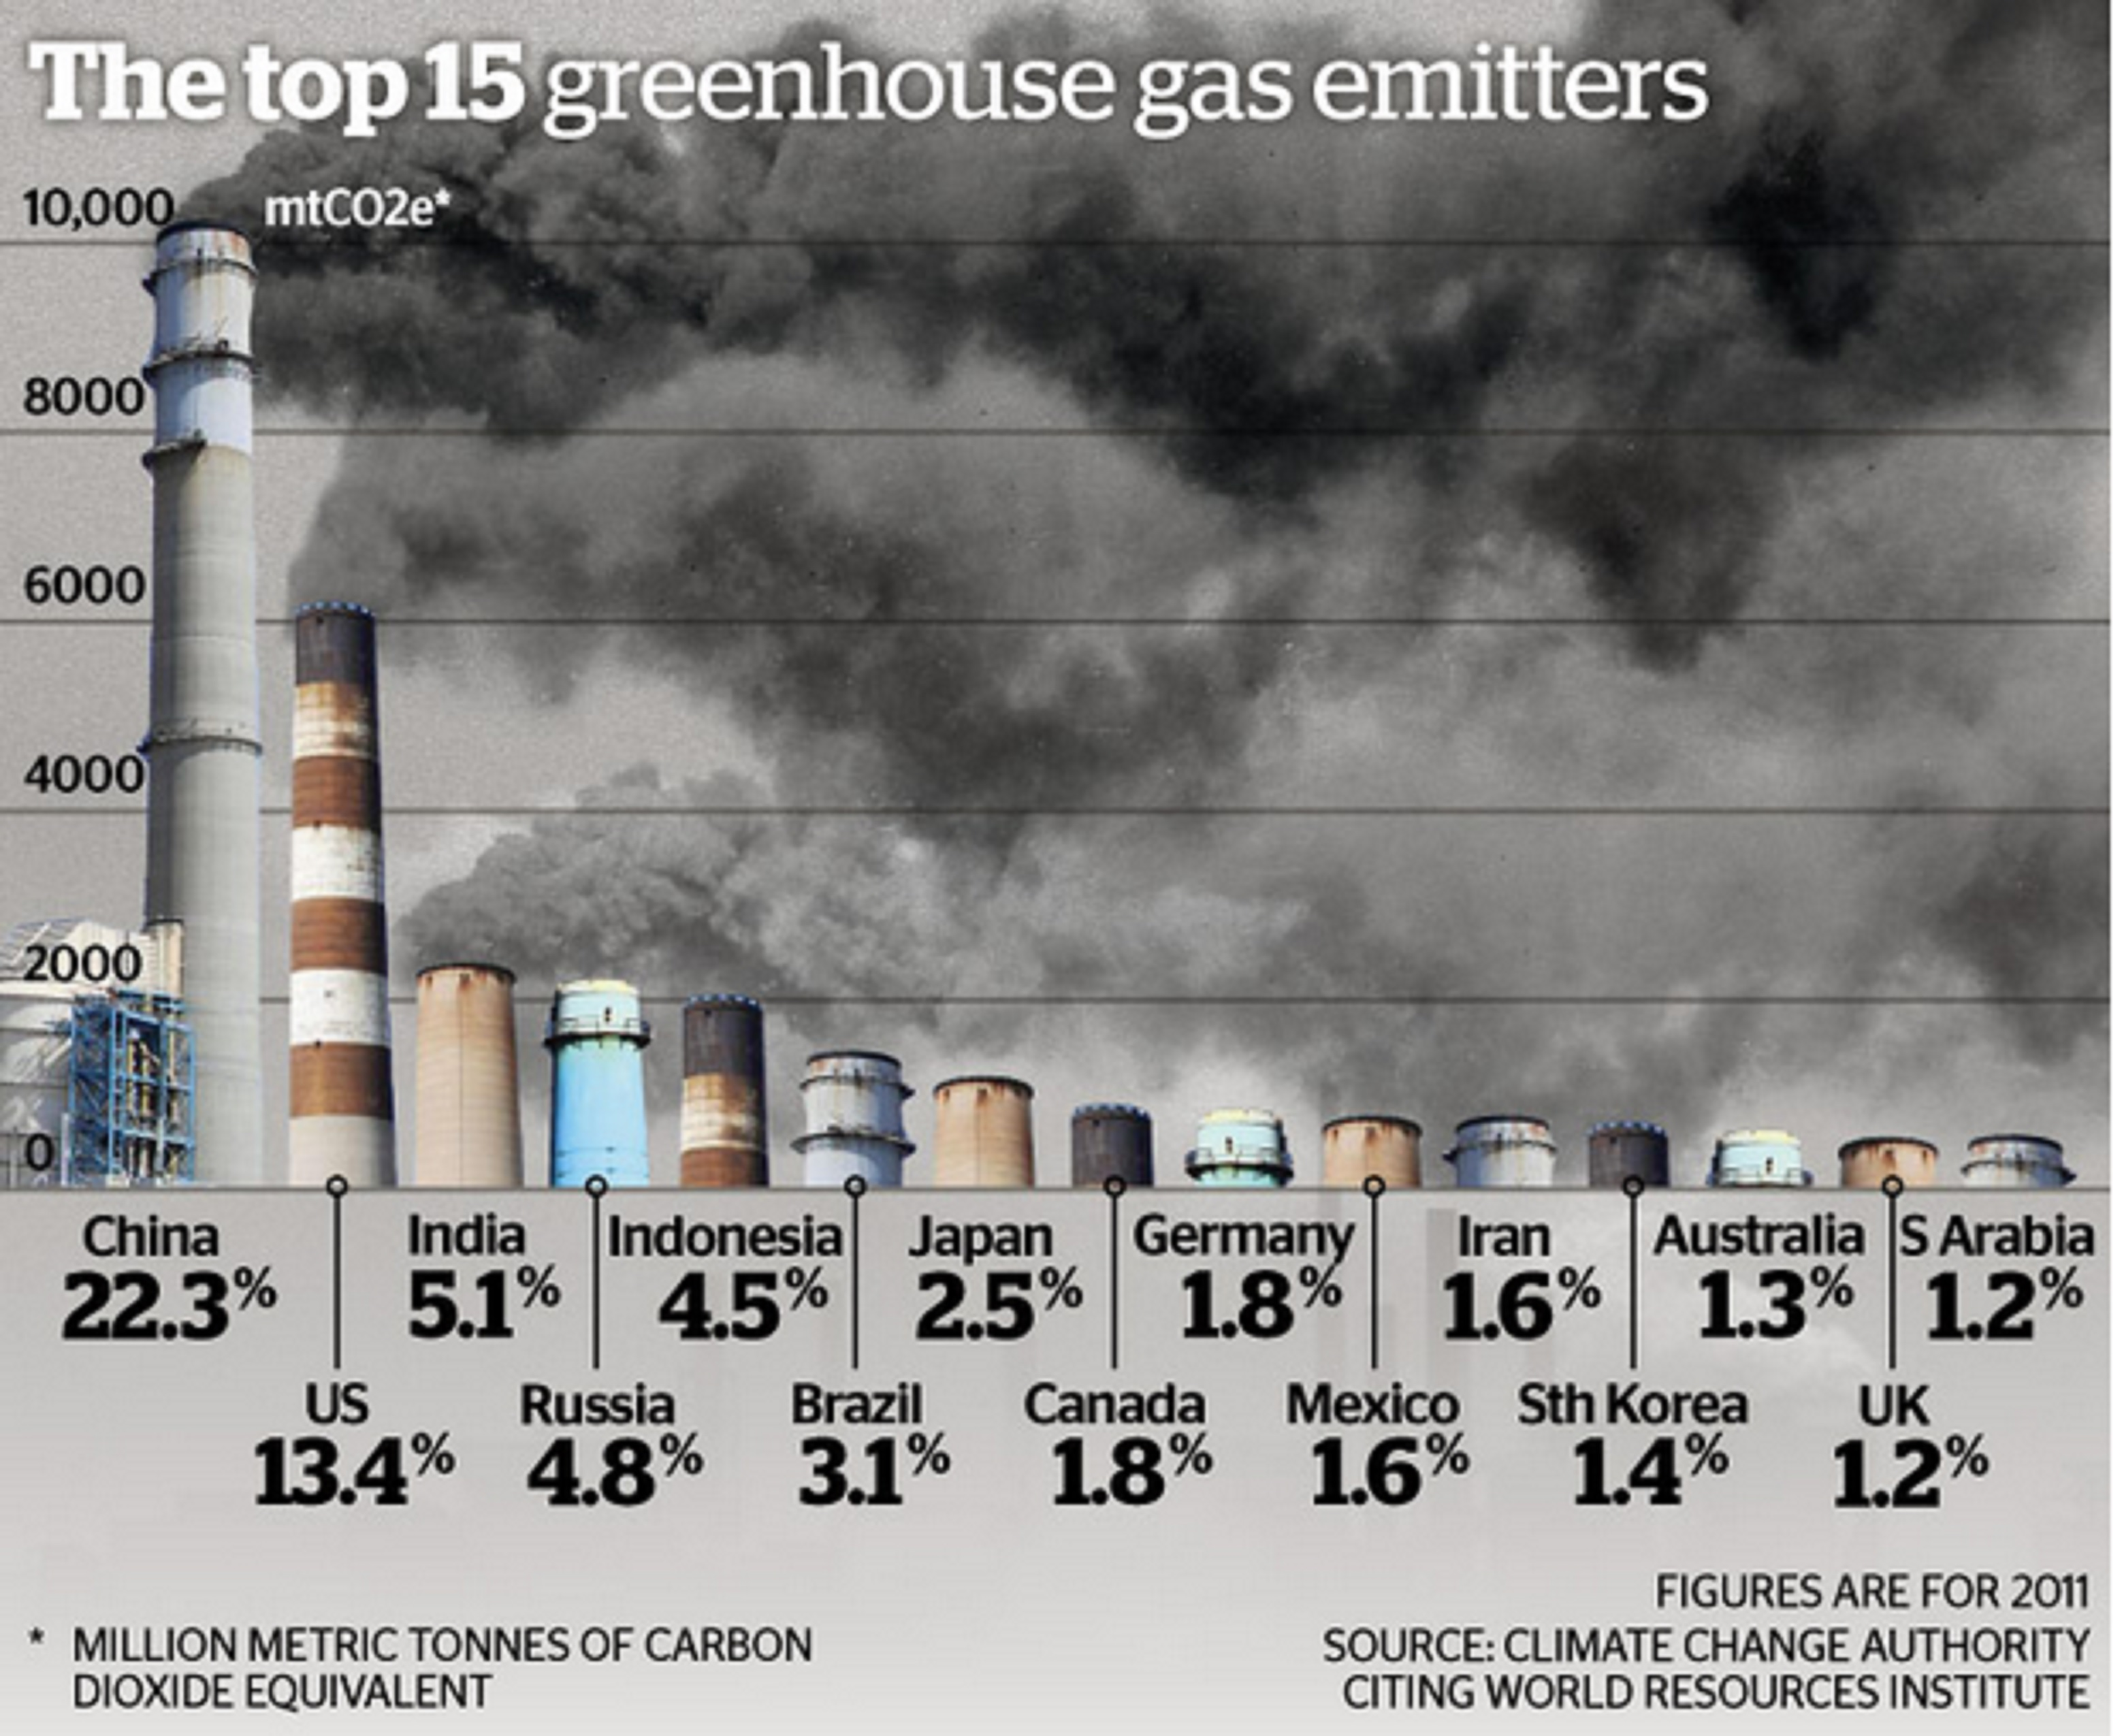 Top 15 greenhouse gas emitters in 2011